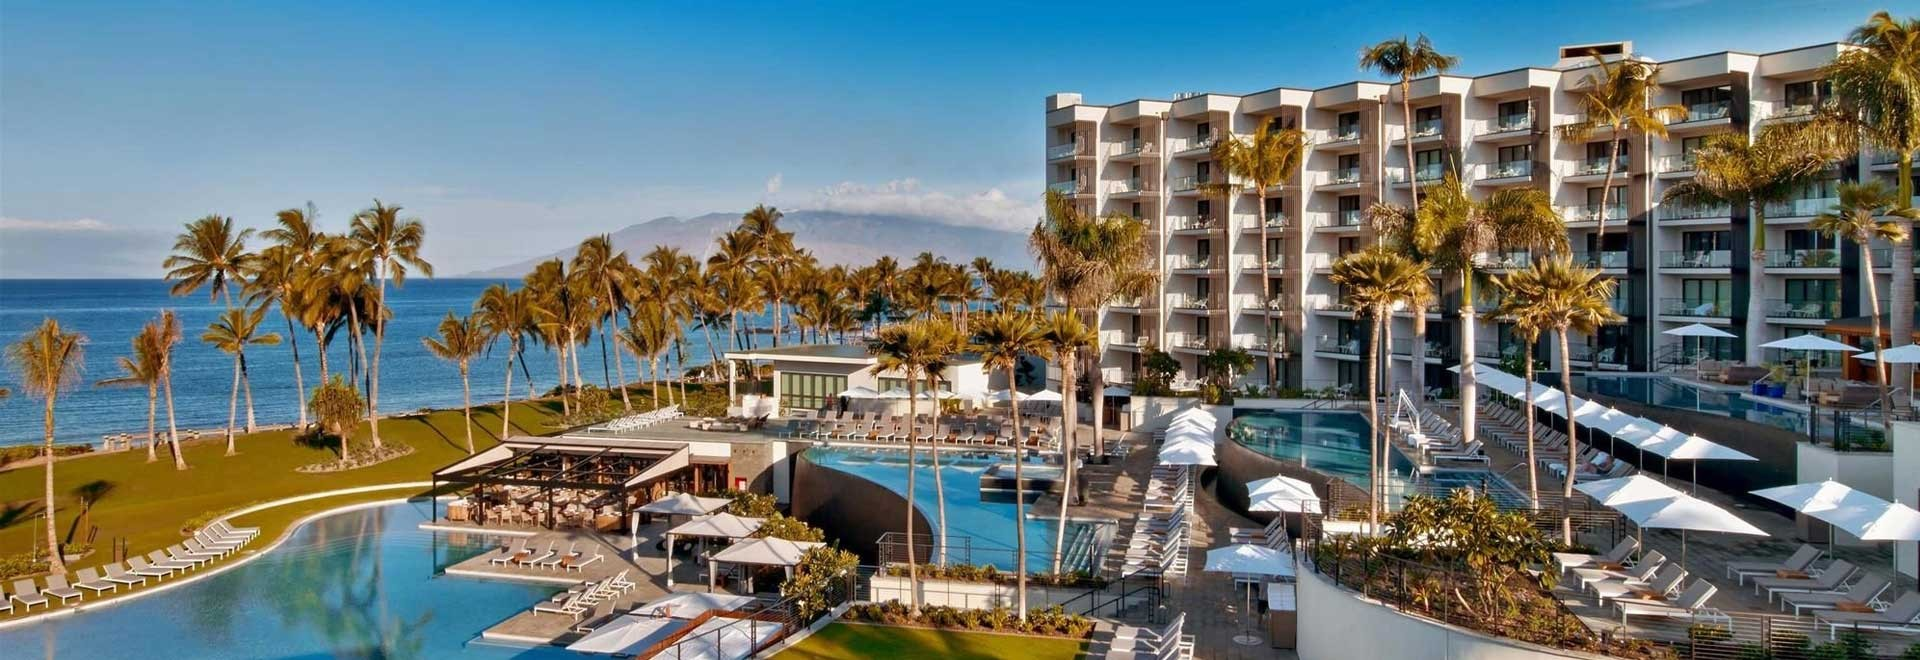 Andaz Maui at Wailea Resort by Hyatt, Hawaii - Book. Travel. Play.